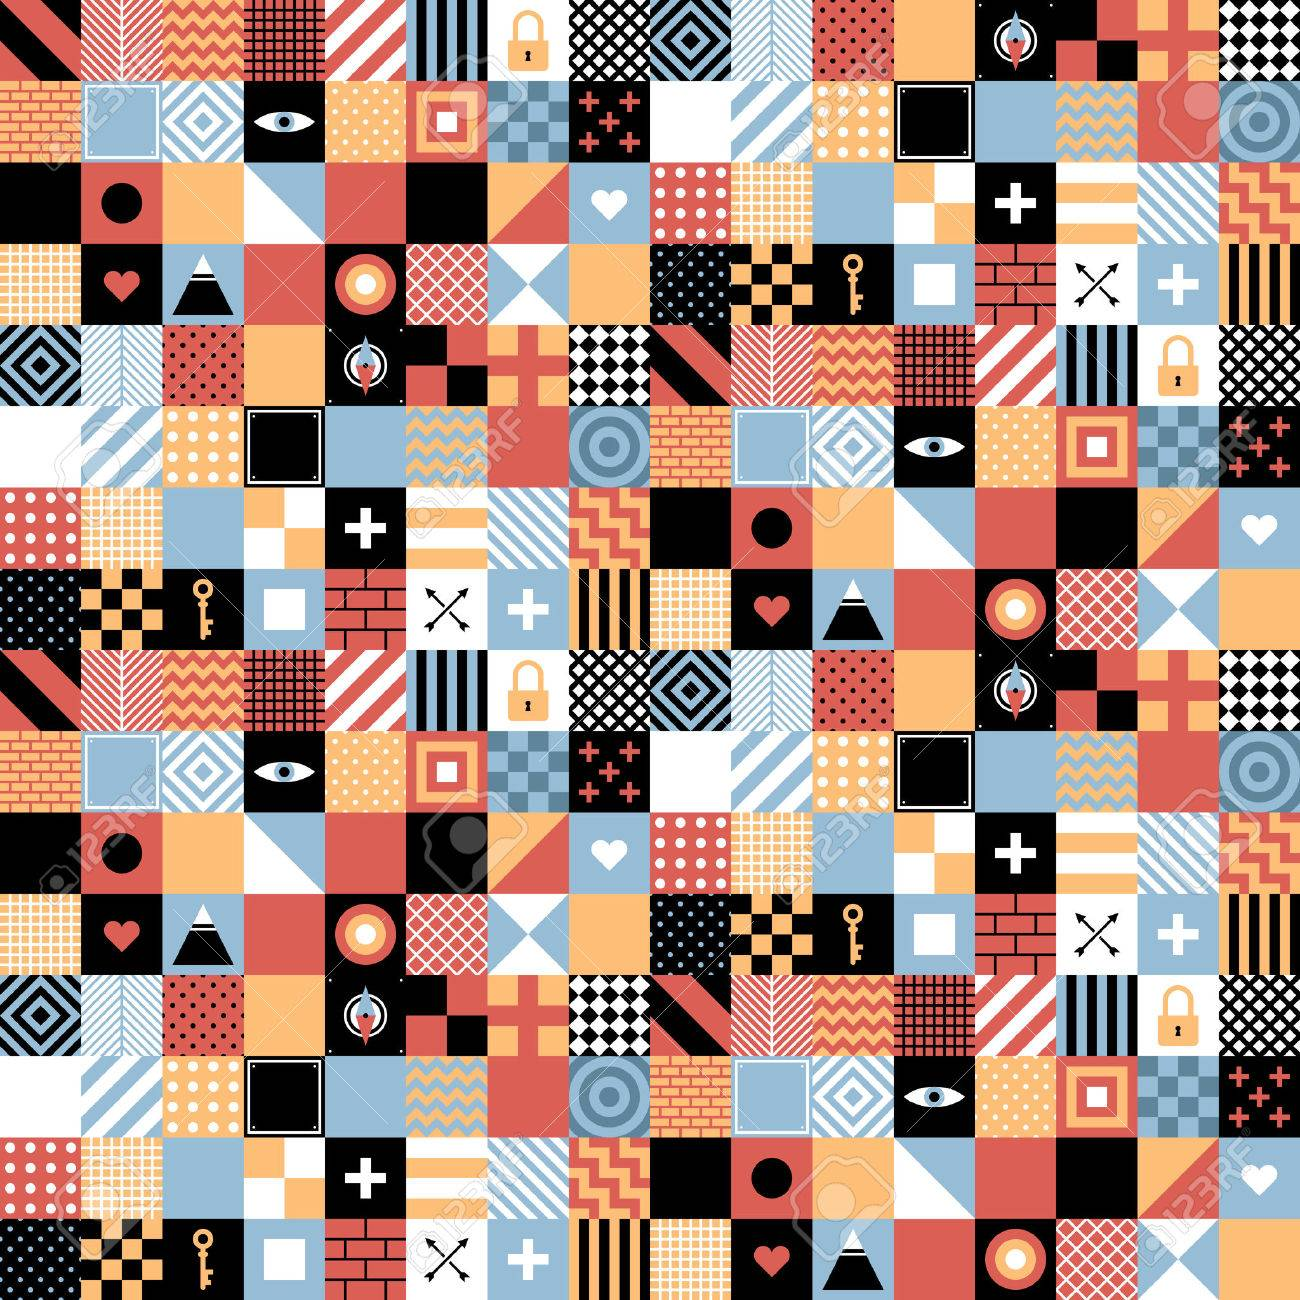 Seamless geometric pattern in flat style with squares and small icons. Useful for wrapping, wallpapers and textile. Foto de archivo - 67675031